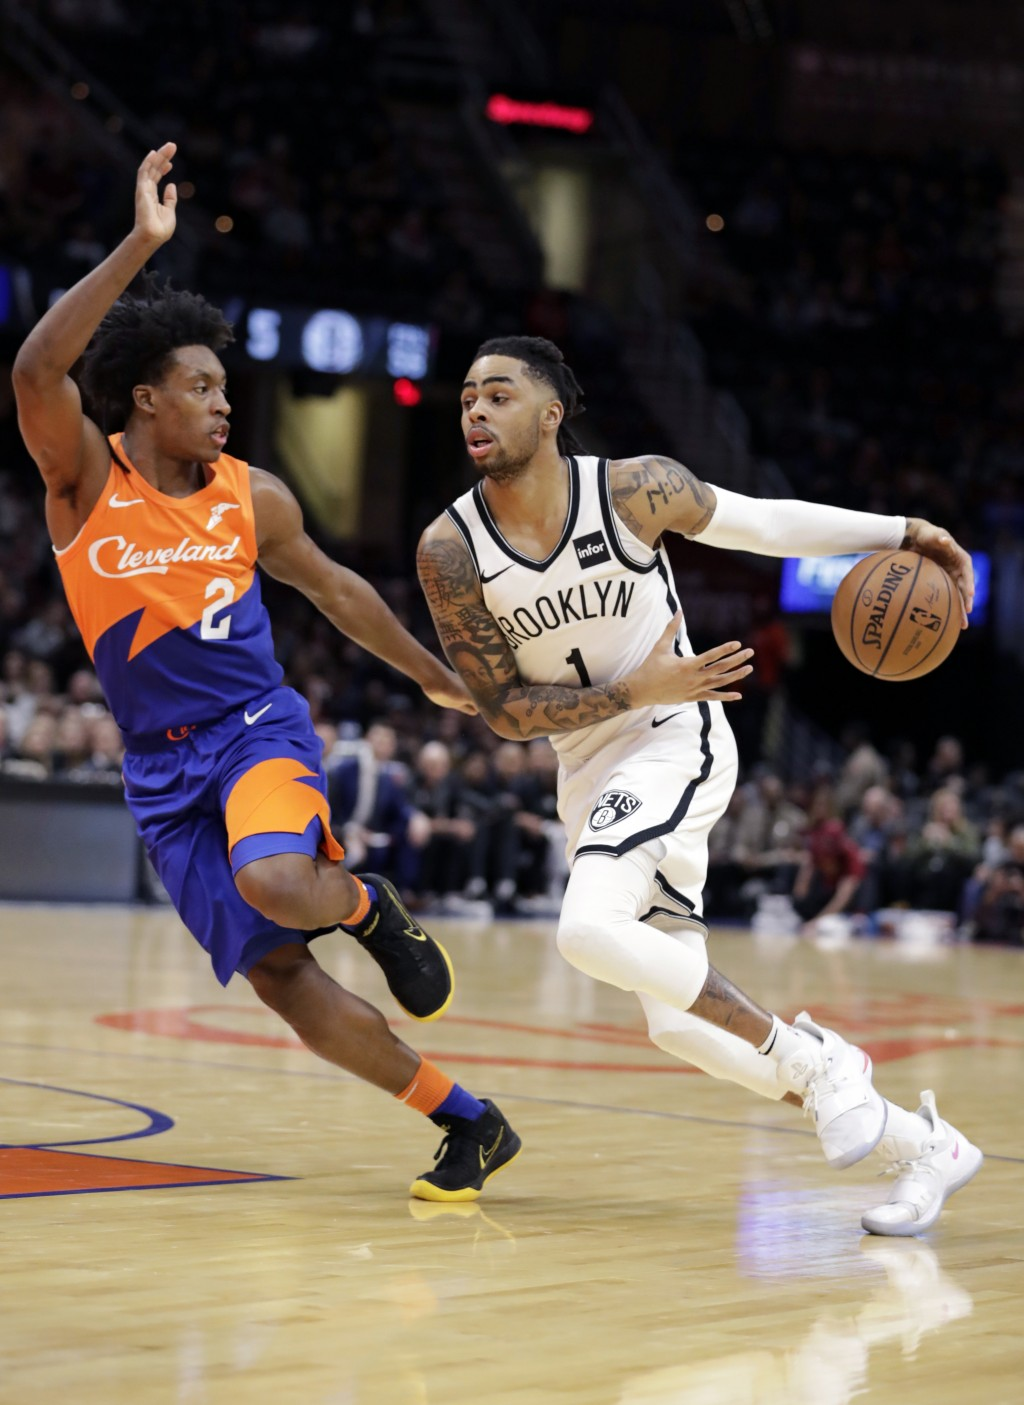 Brooklyn Nets' D'Angelo Russell (1) drives against Cleveland Cavaliers' Collin Sexton (2) in the first half of an NBA basketball game, Wednesday, Feb.